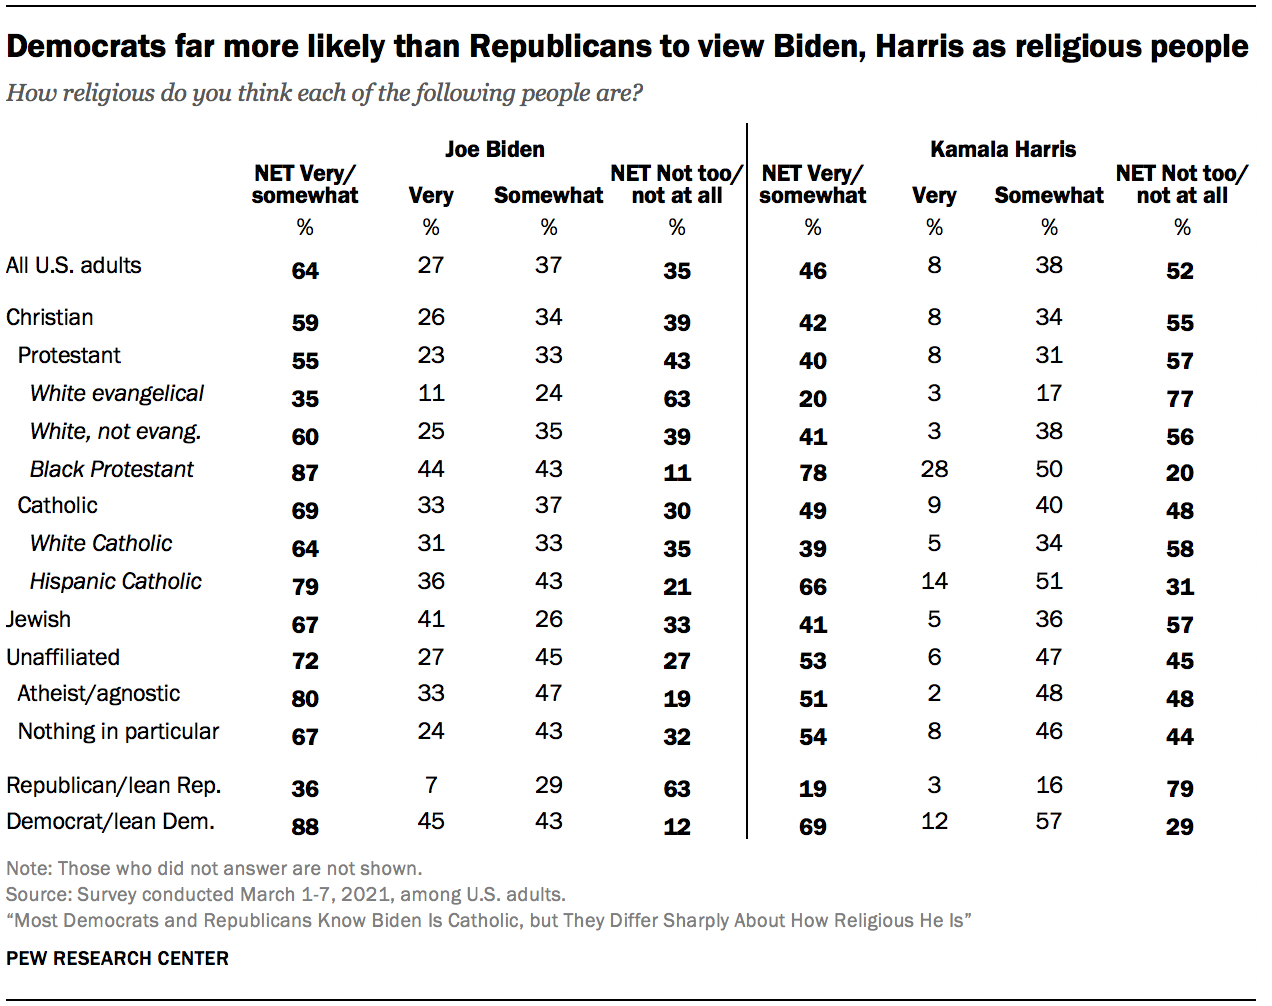 Democrats far more likely than Republicans to view Biden, Harris as religious people